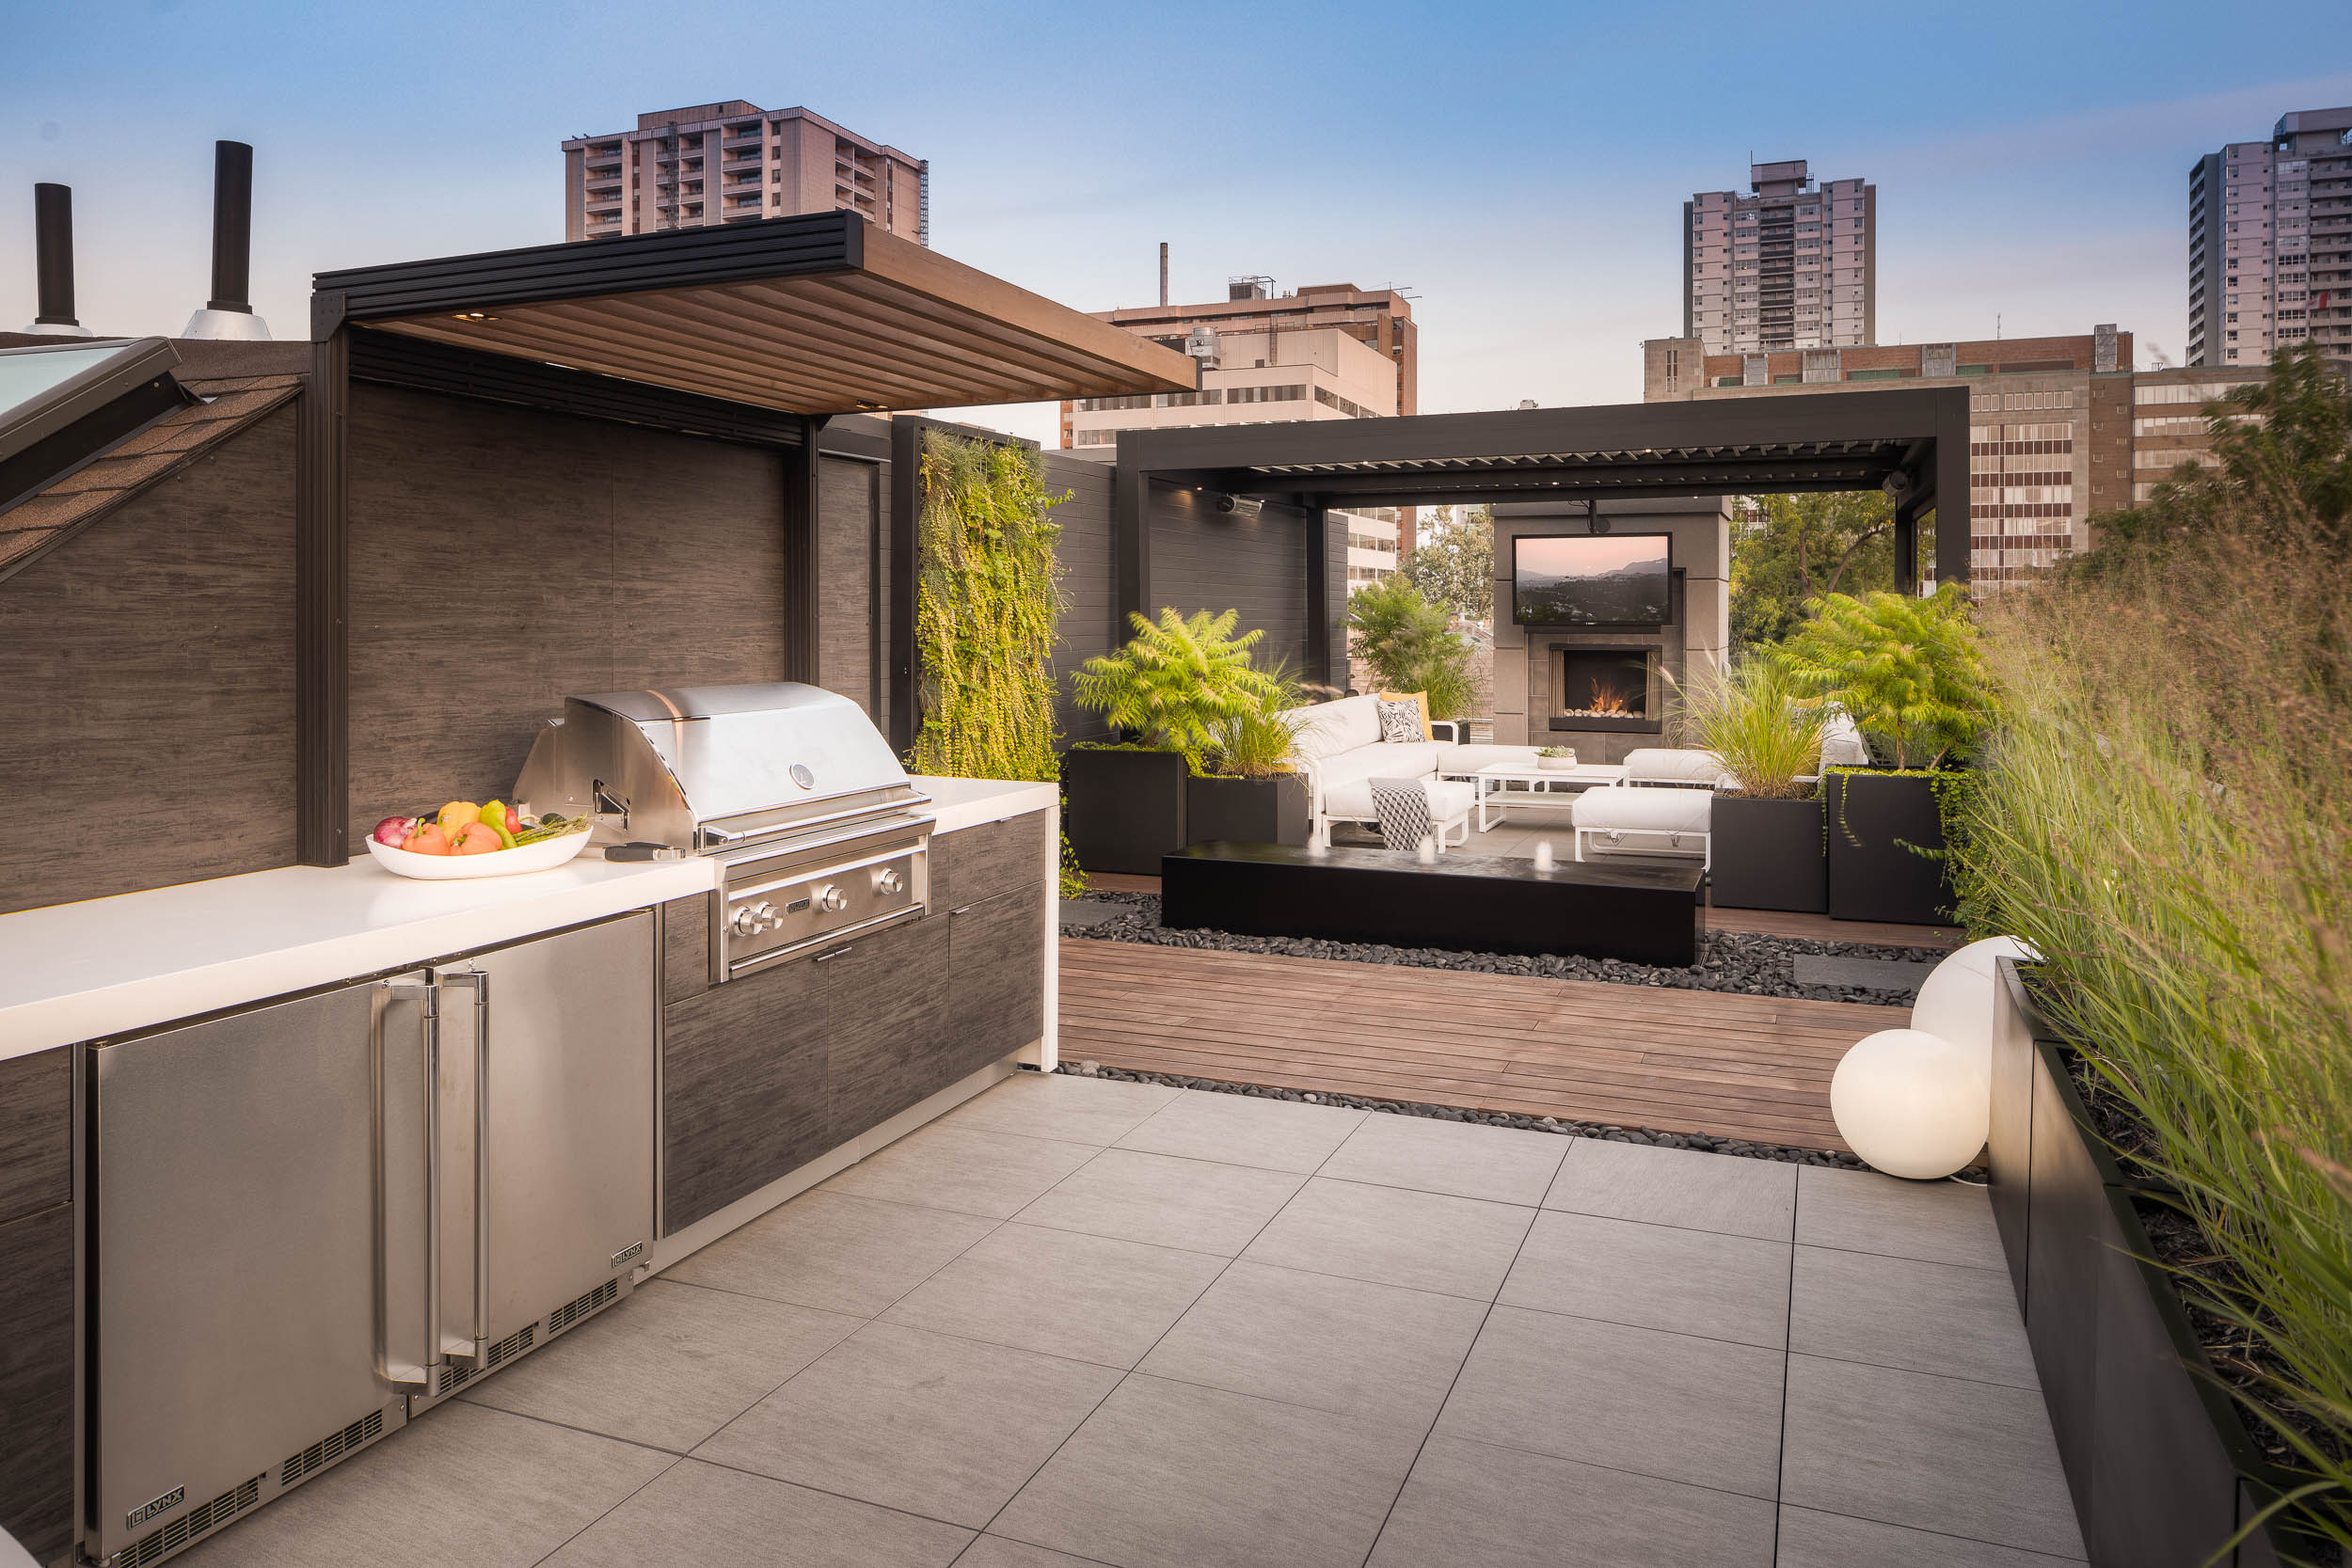 Garden Living - Rooftop Kitchen Lynx 2.jpg